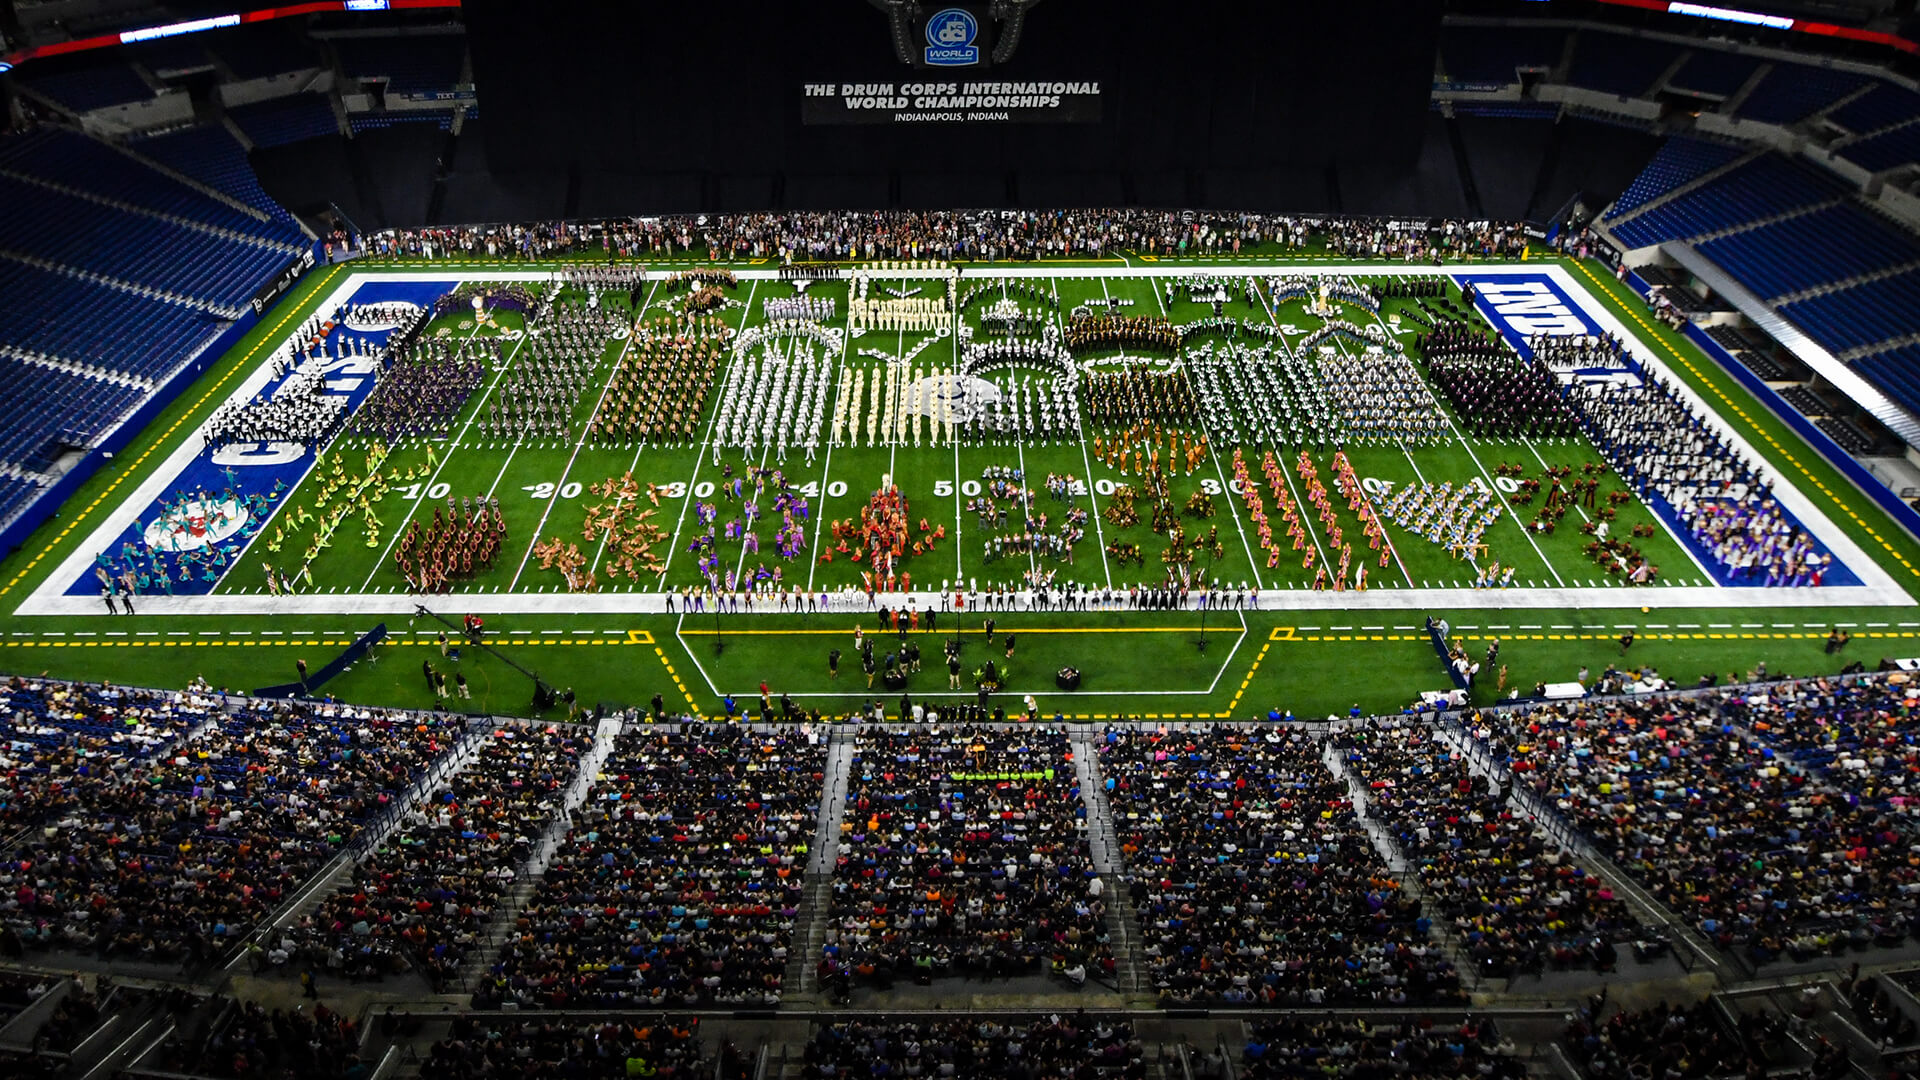 Top headlines of the 2018 DCI World Championships